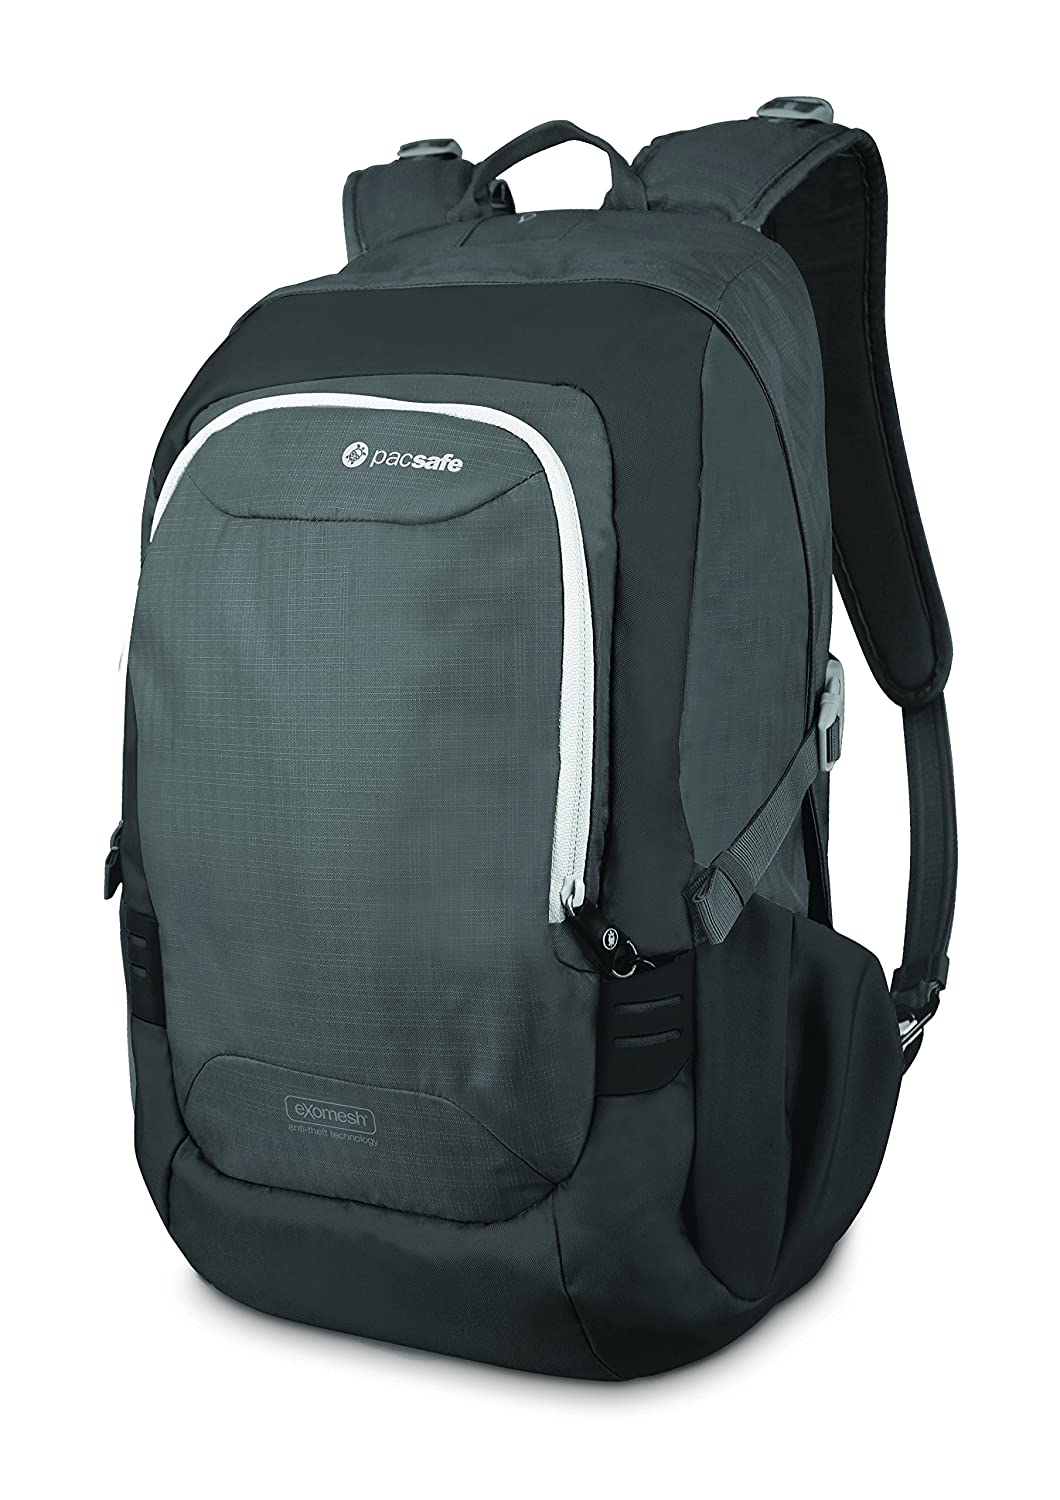 Pacsafe Venturesafe 25L GII Anti-Theft Daypack, Black Outpac Designs Inc - PACSAFE - CA 60300100